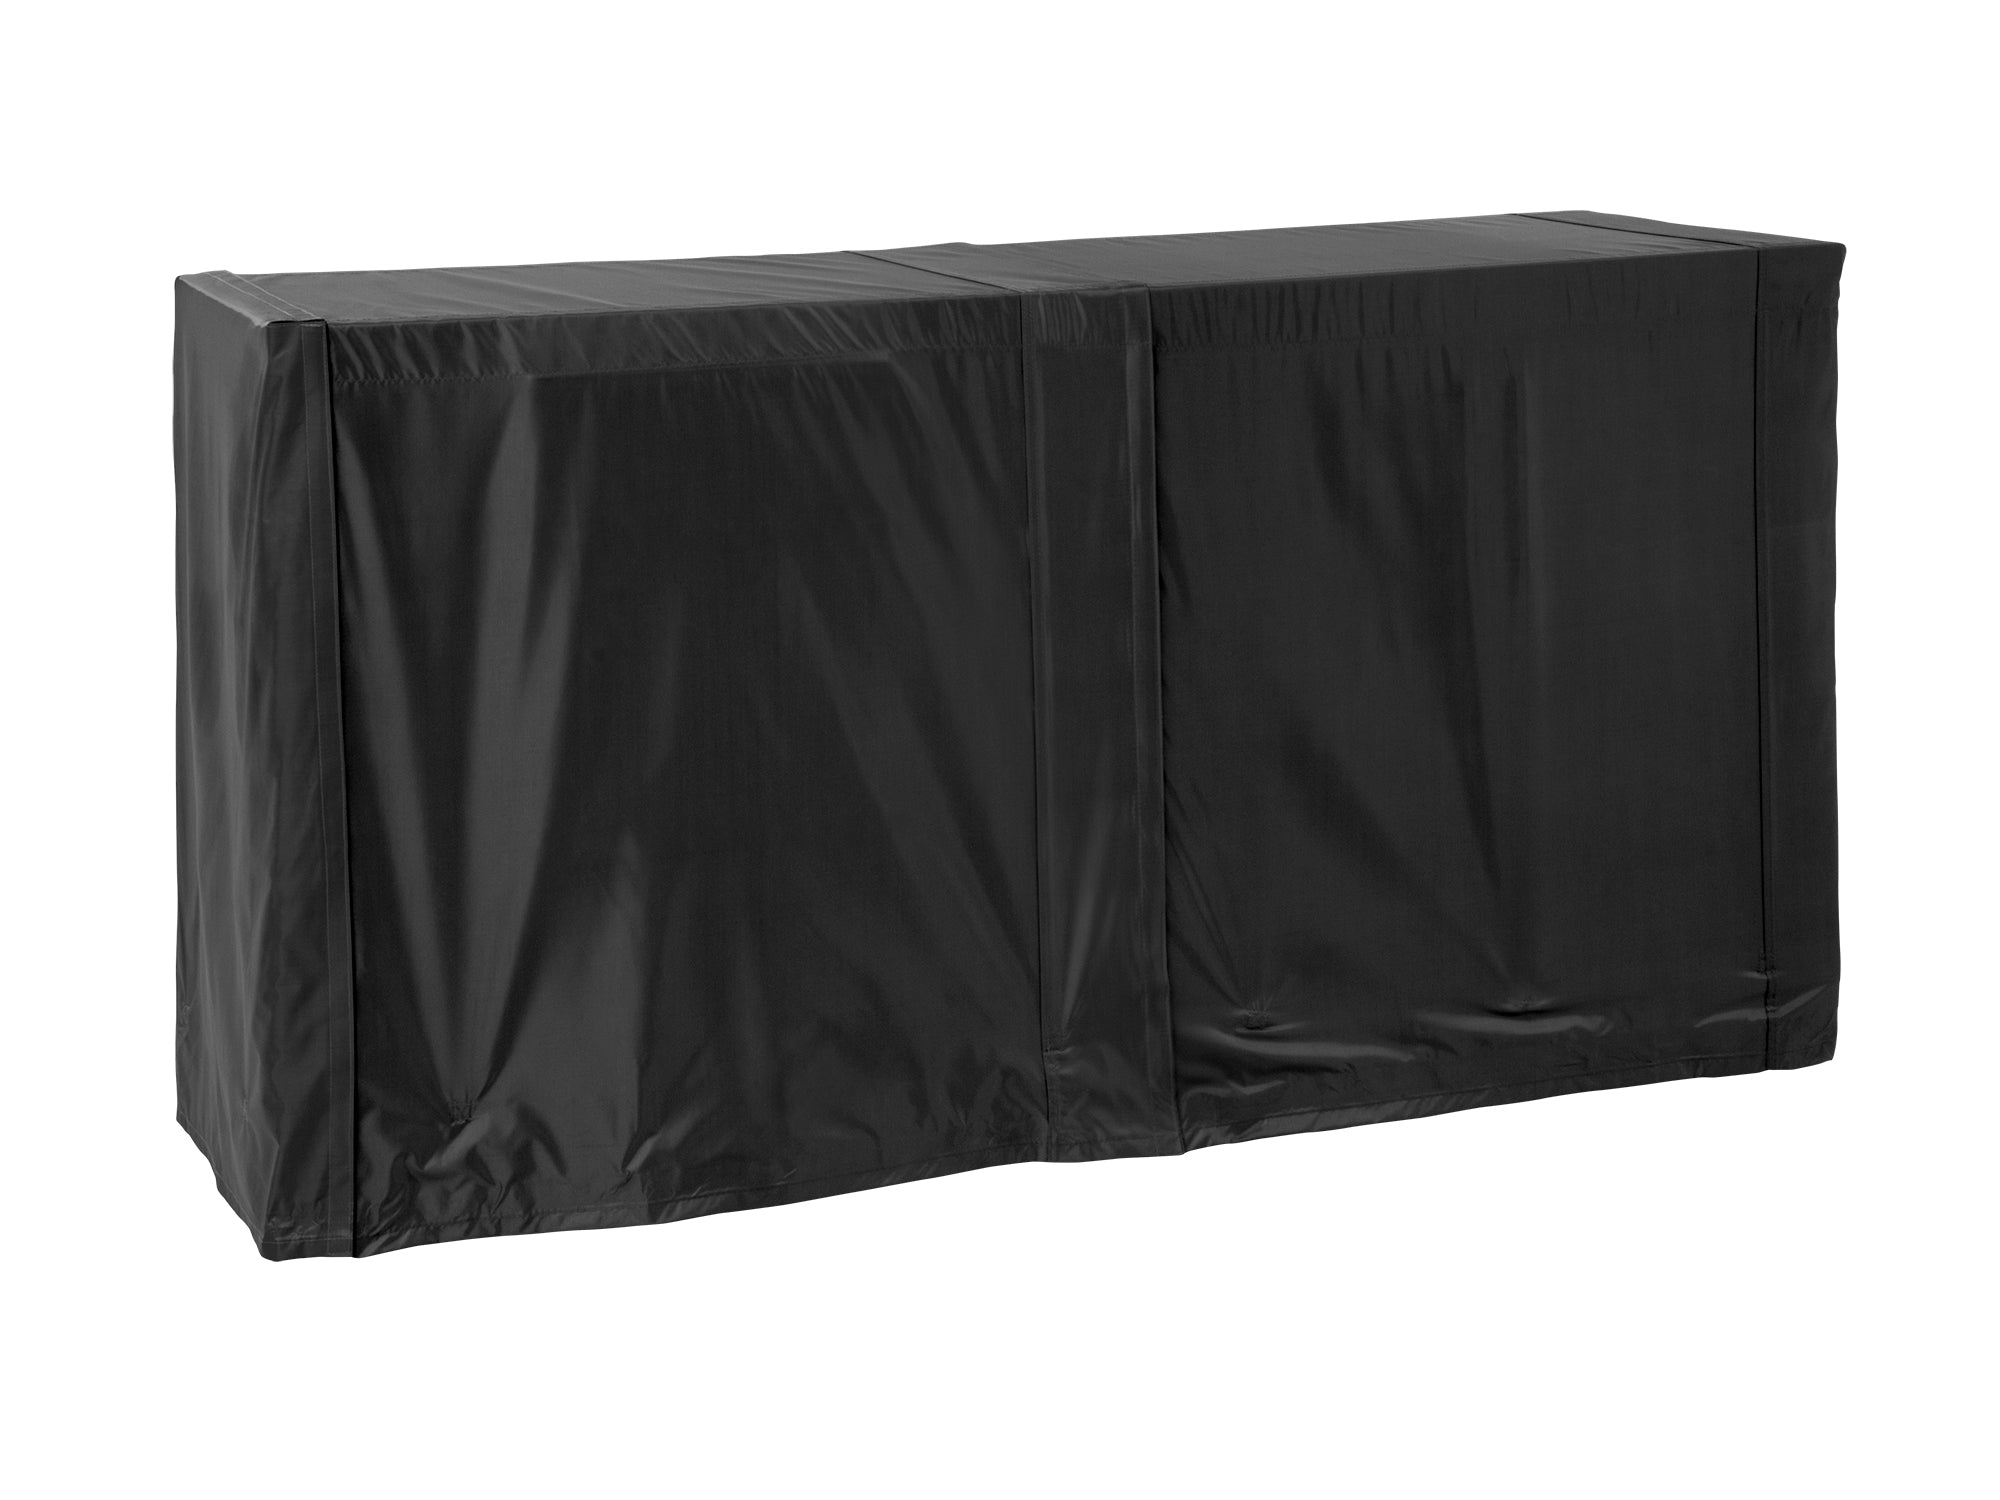 Outdoor Kitchen All-Season Cover Bundle: (2) 64 in. Covers, 90 Degree Corner Cover, Right/Left Side Panel Covers